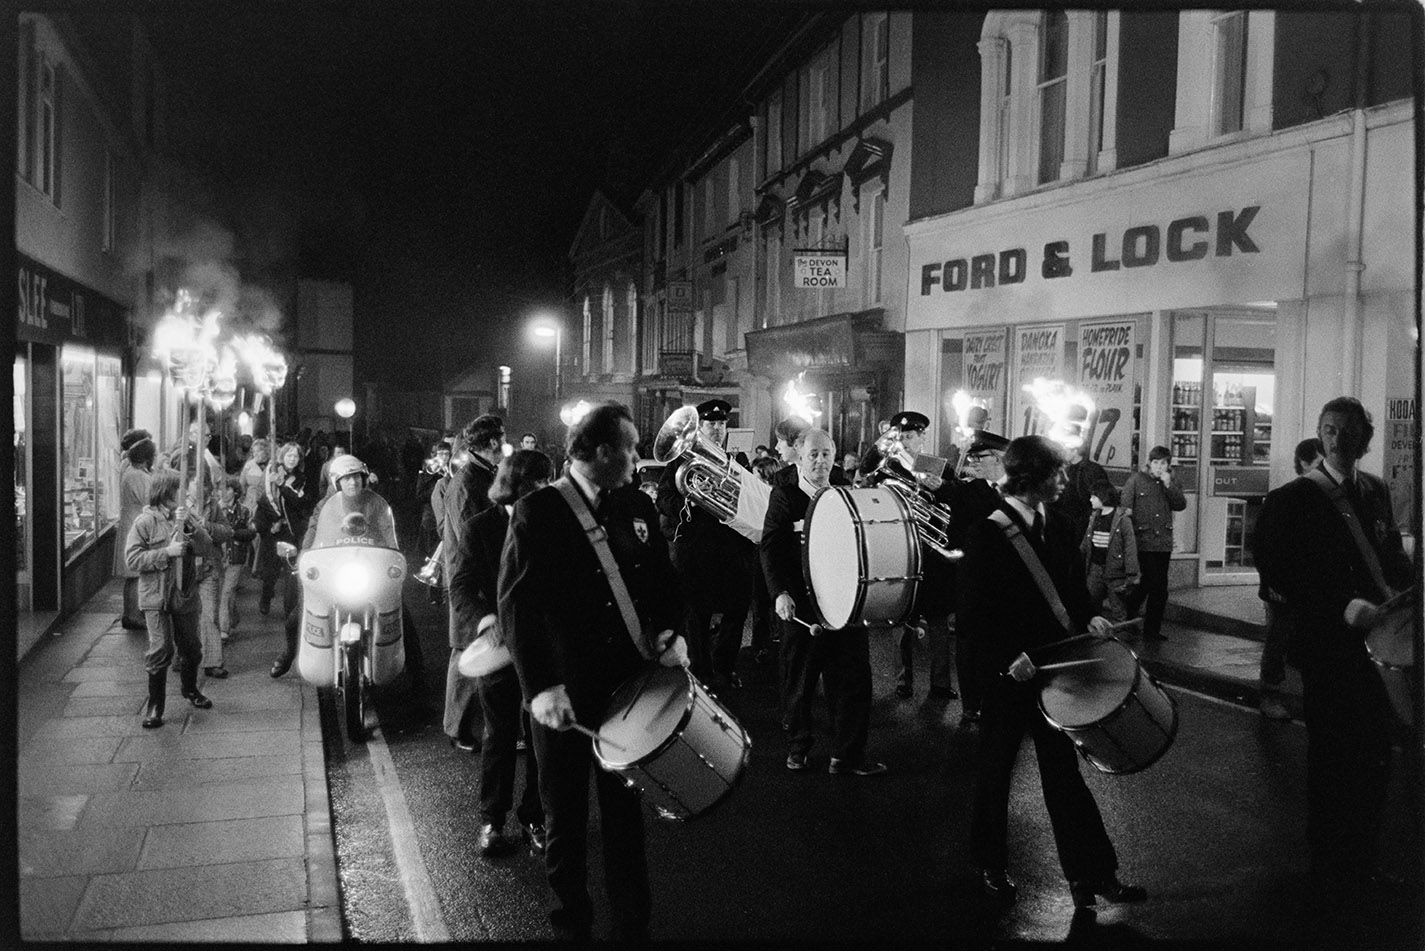 Street scene with torch bearers, Torrington, 2 November 1974